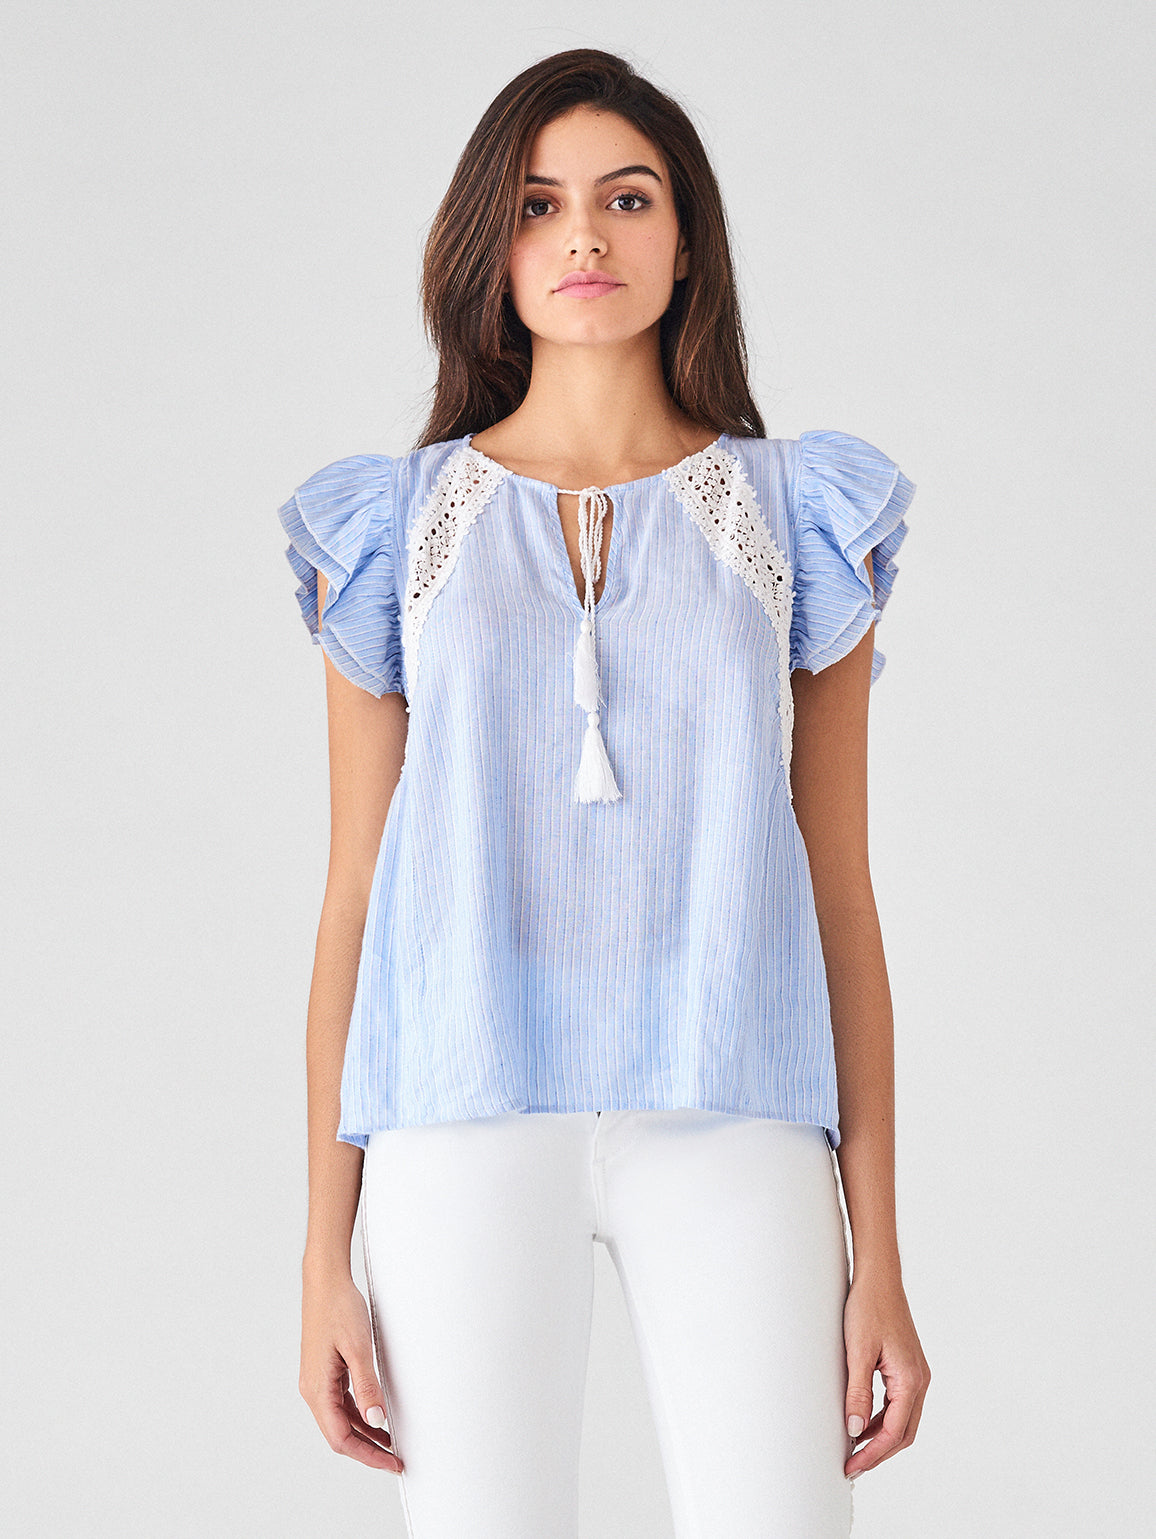 Leroy St Top | Blue Stripe